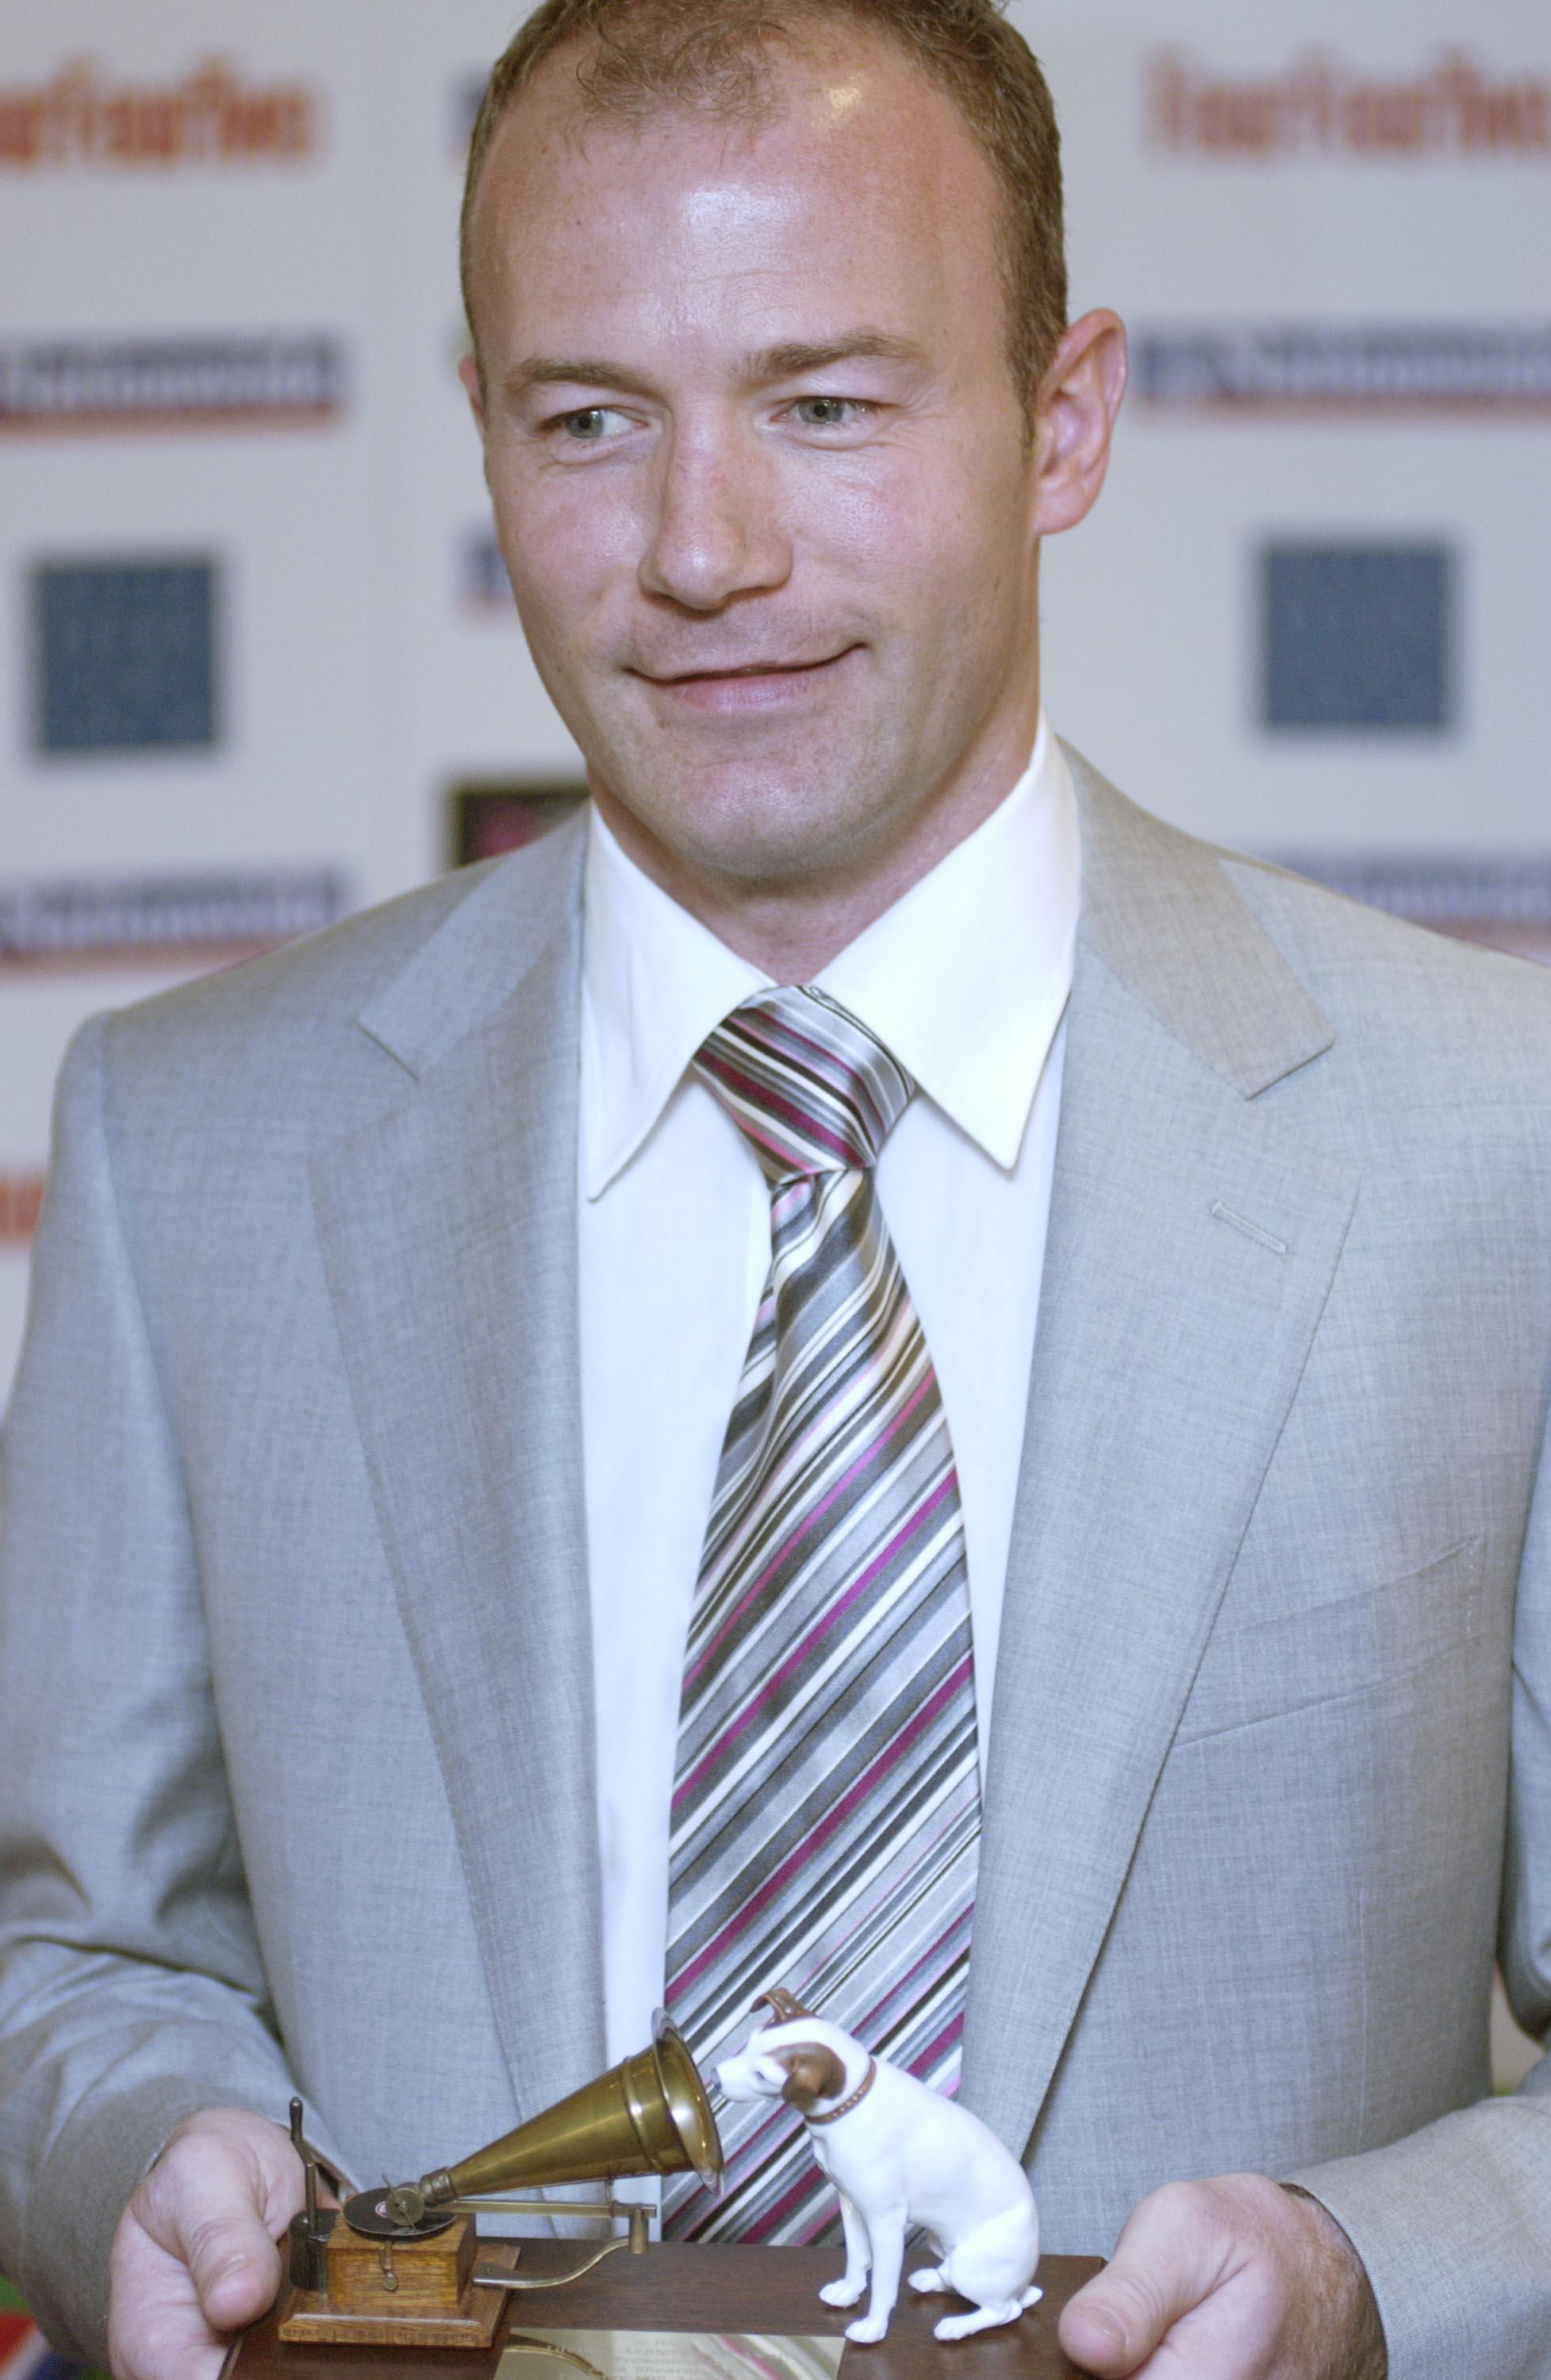 The Premier League's all-time top goalscorer Alan Shearer netted 260 times and joined the elite list in 2006